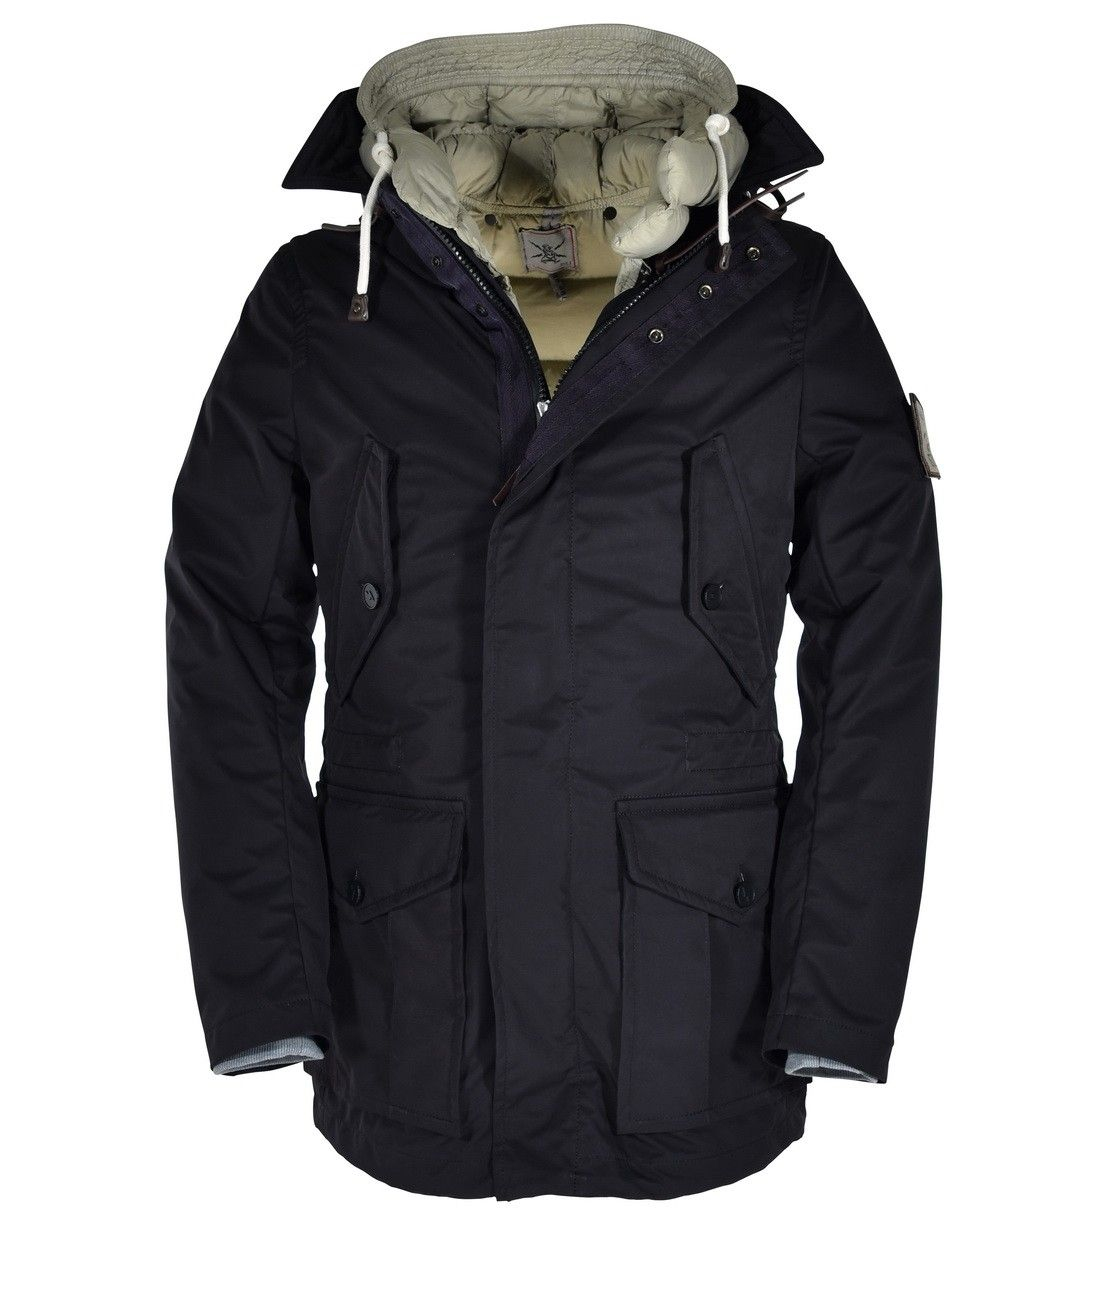 GJO.E - Herren Winter Jacke 29 + Goose Down - Black/Beige